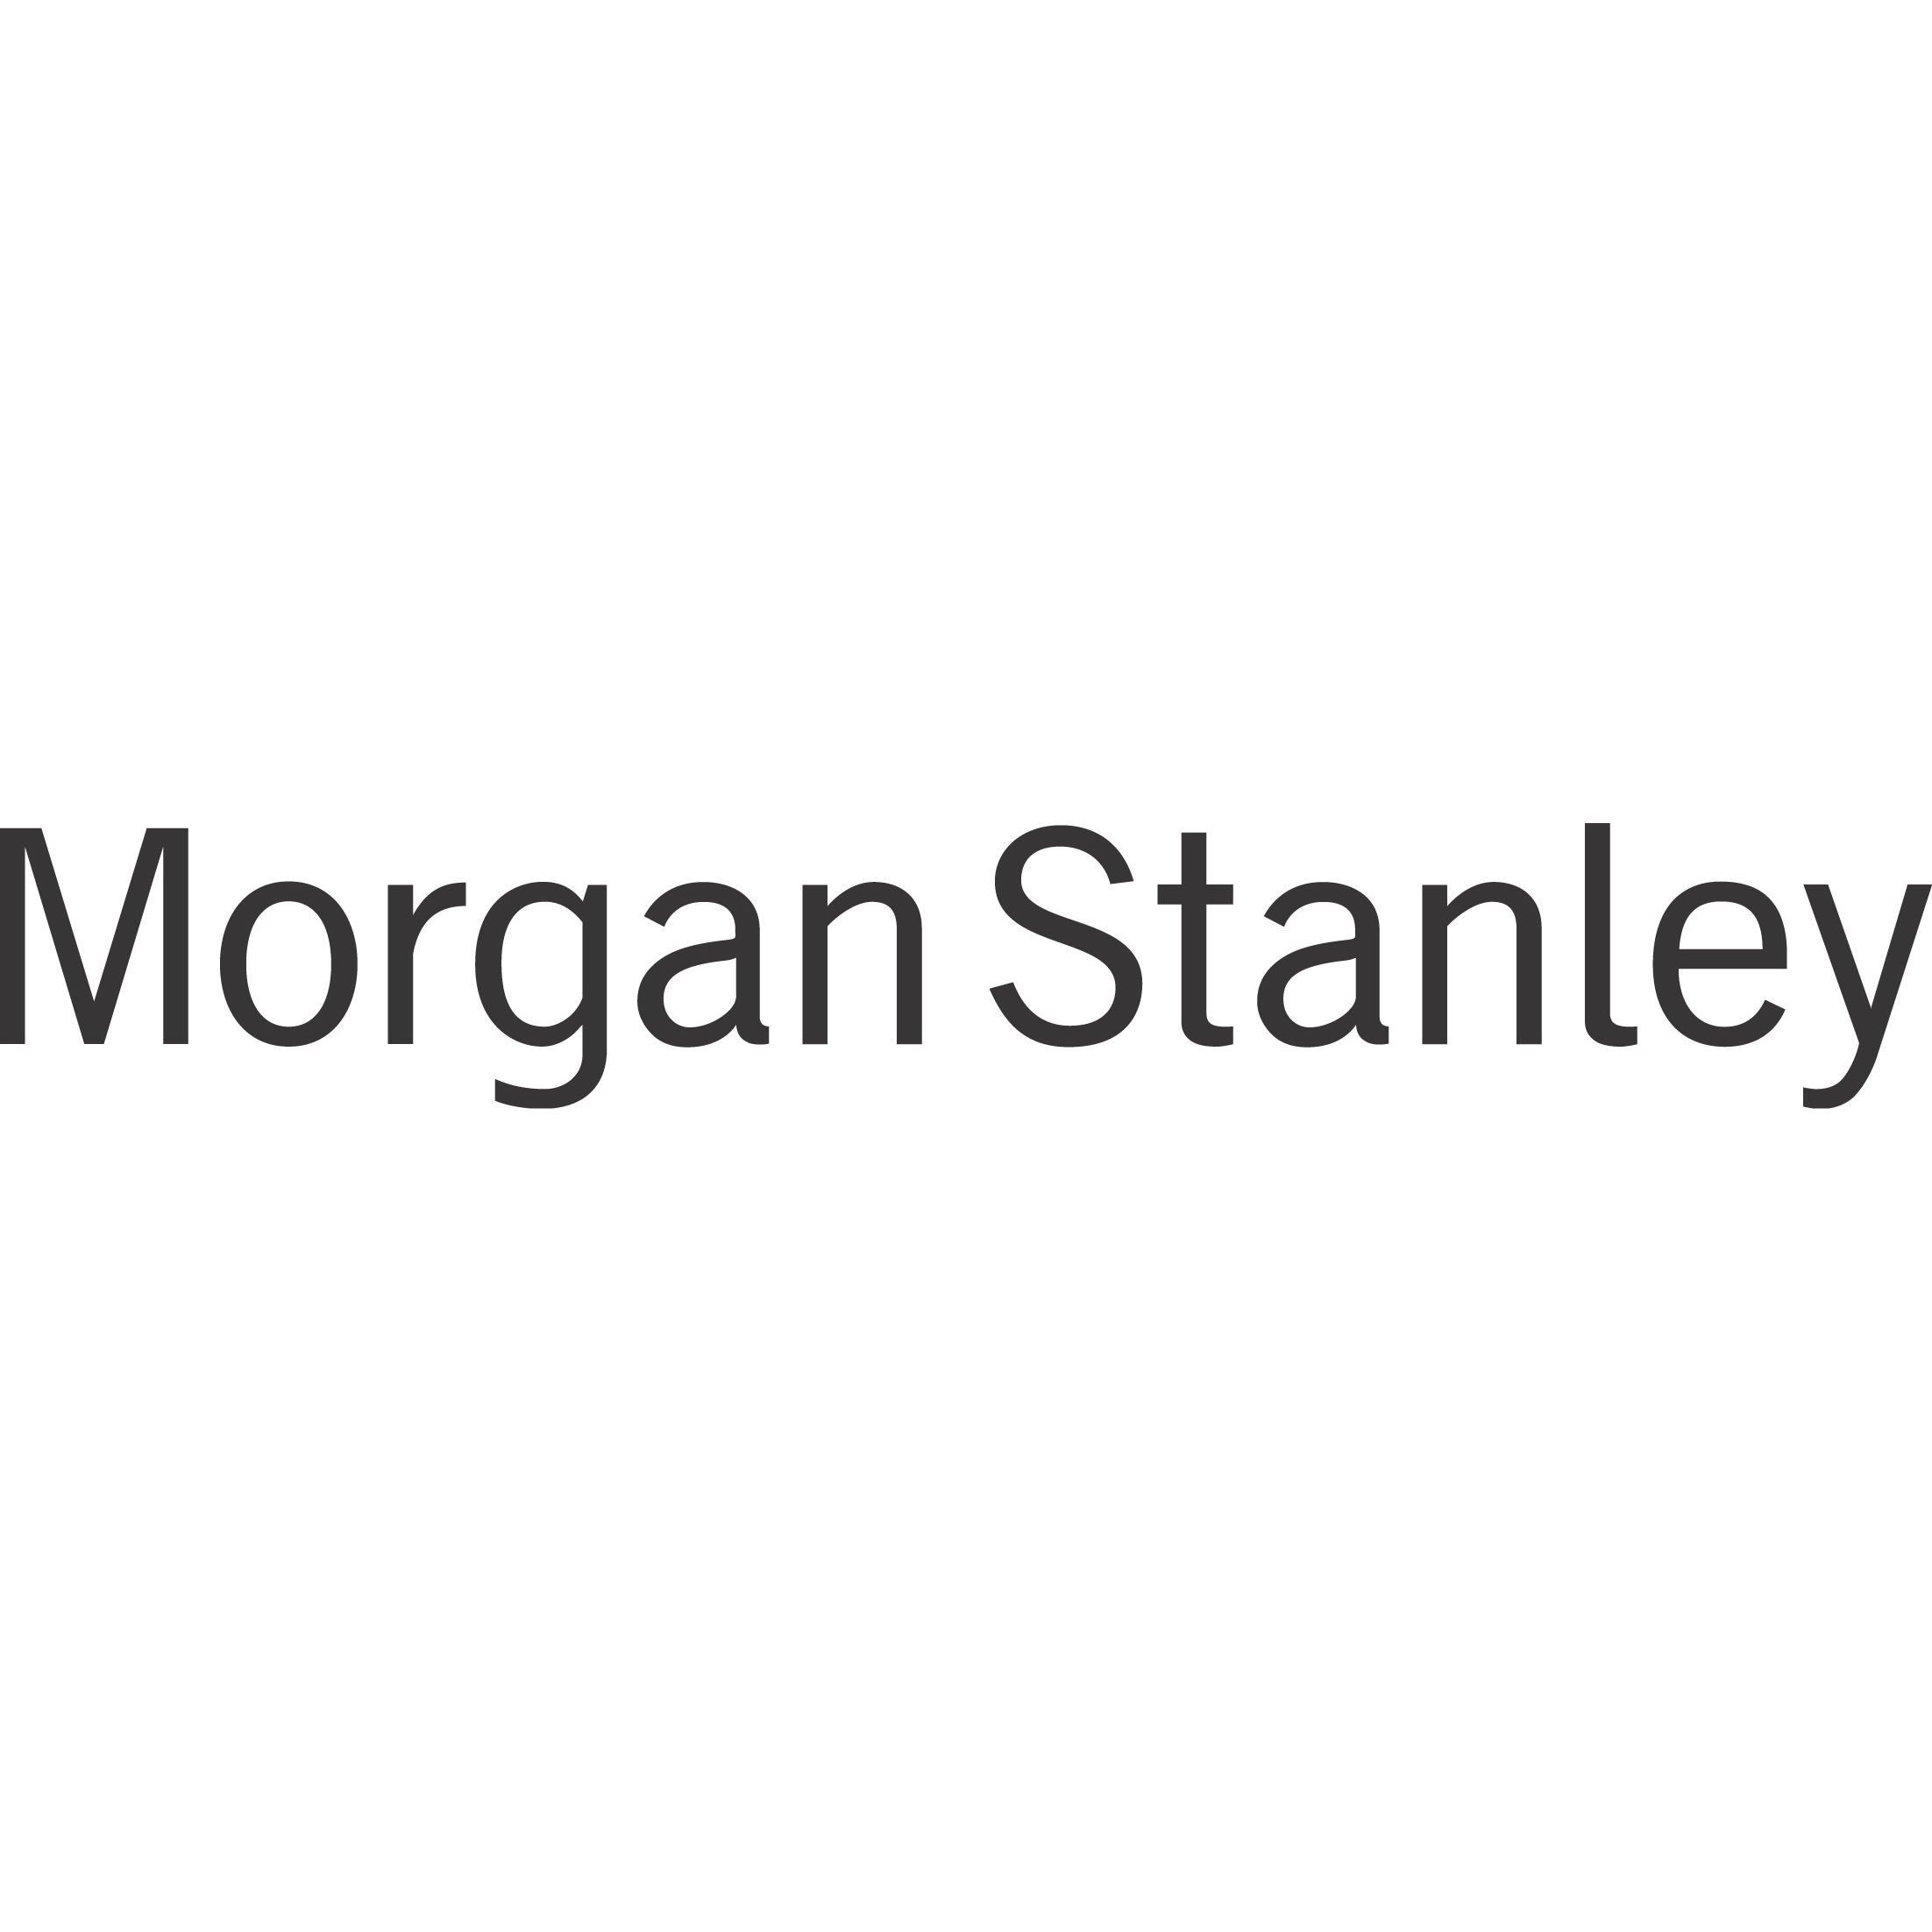 Daniel Gansler - Morgan Stanley | Financial Advisor in Saint Louis,Missouri